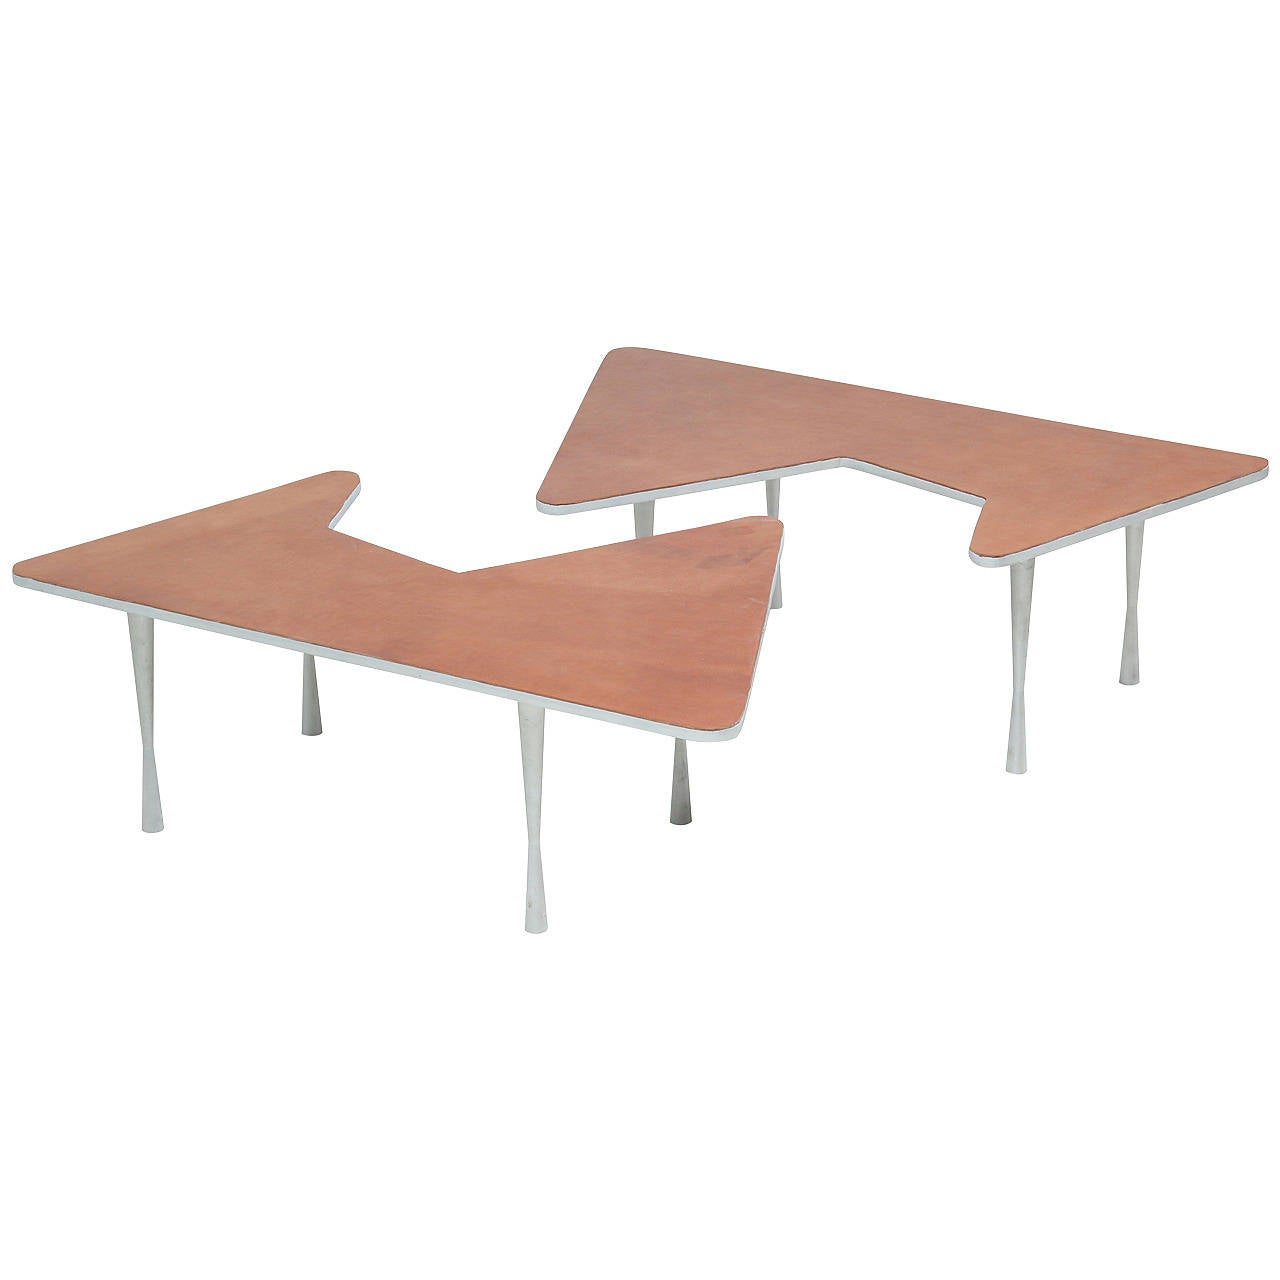 Free form aluminum coffee tables with leather top for sale at 1stdibs Coffee table with leather top